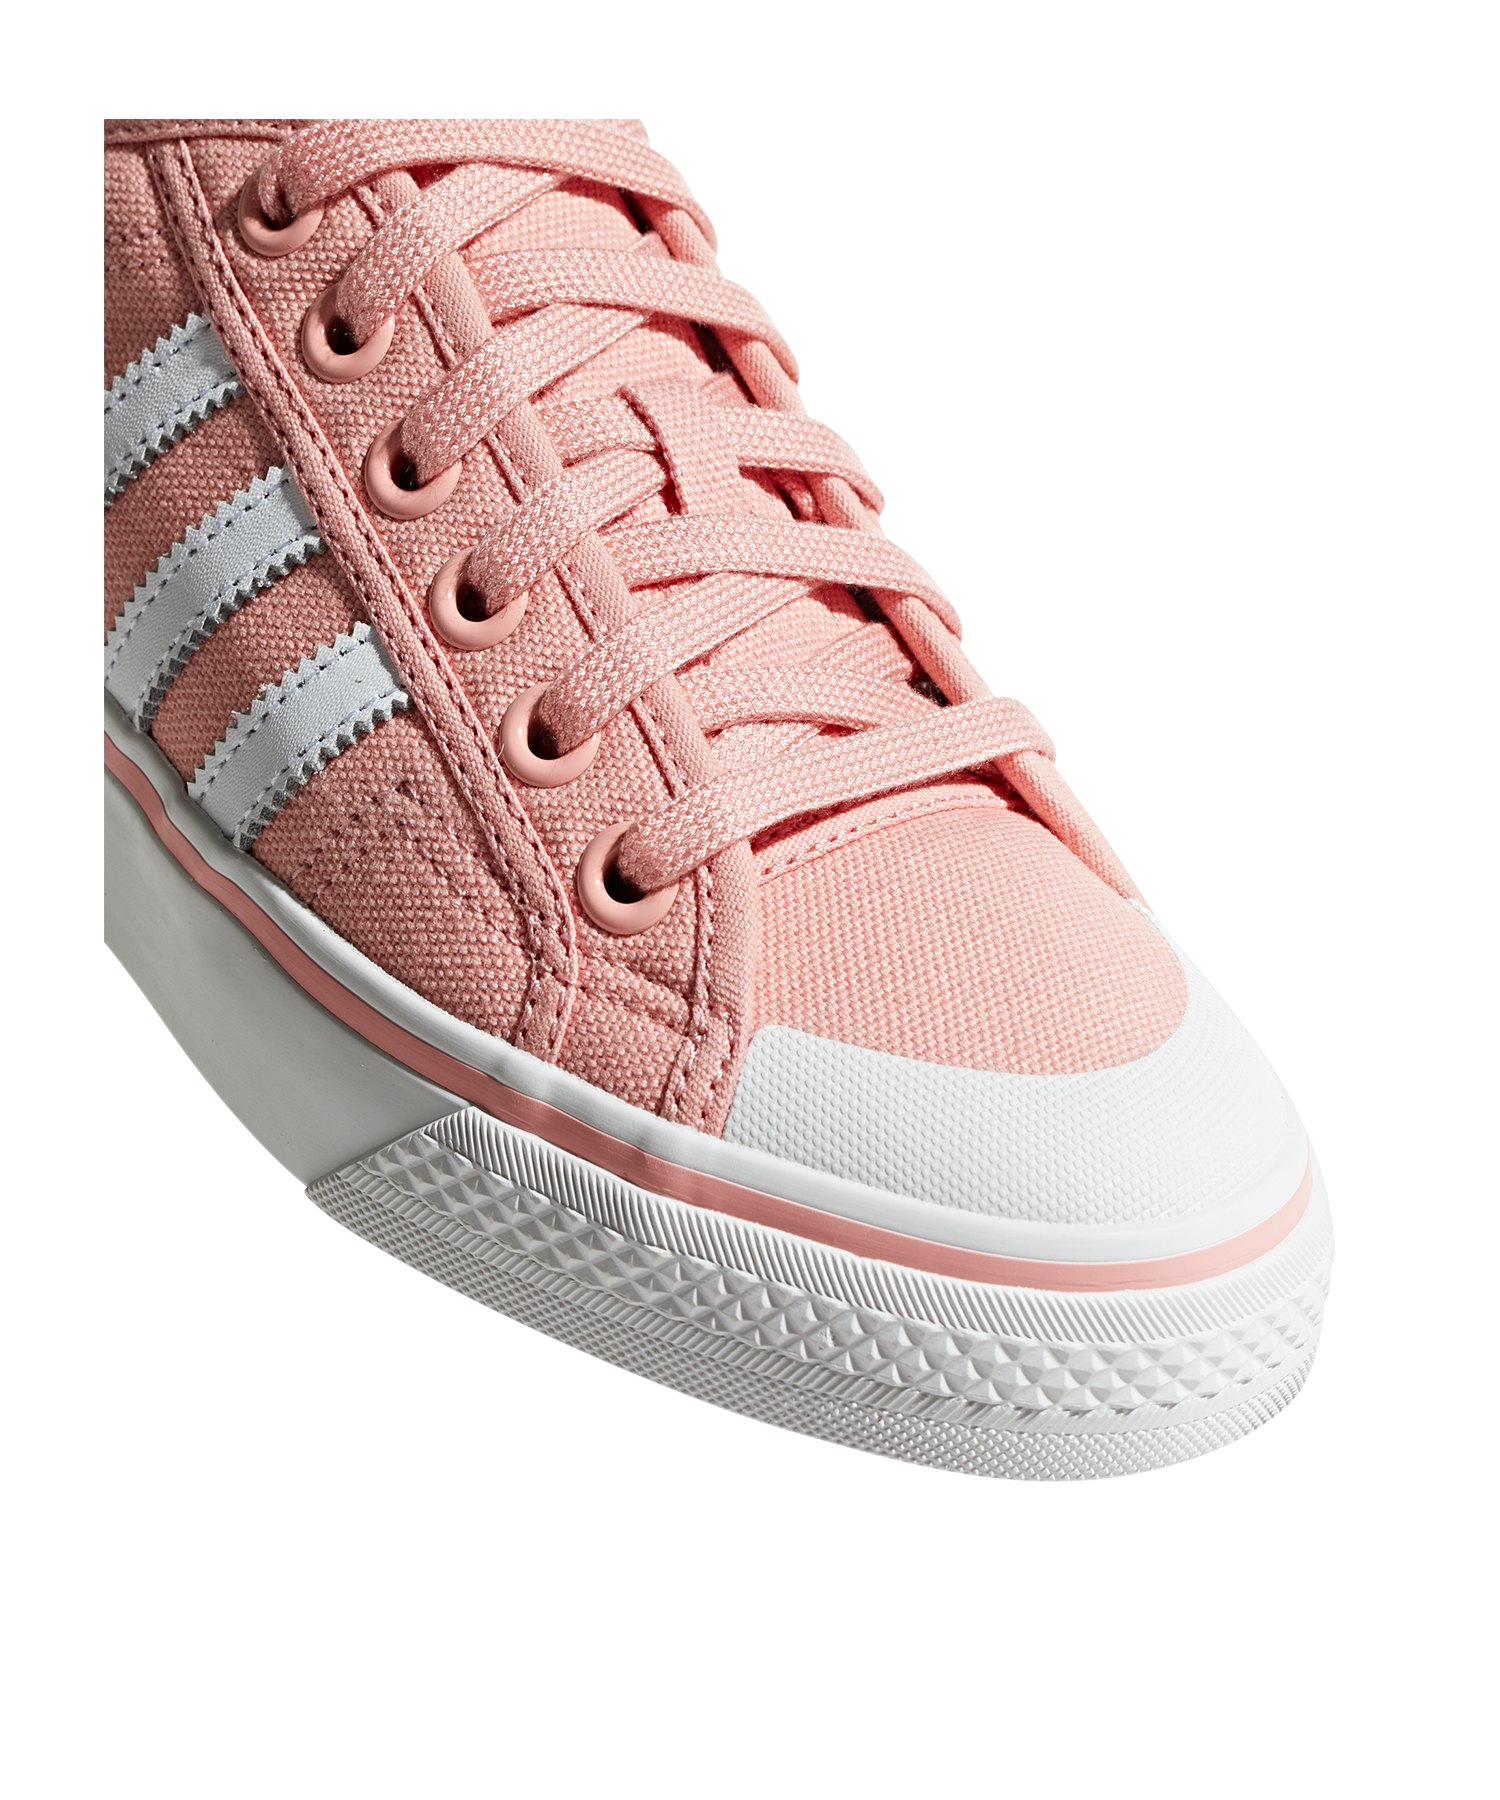 adidas Originals Nizza Sneaker Damen Rosa Weiss